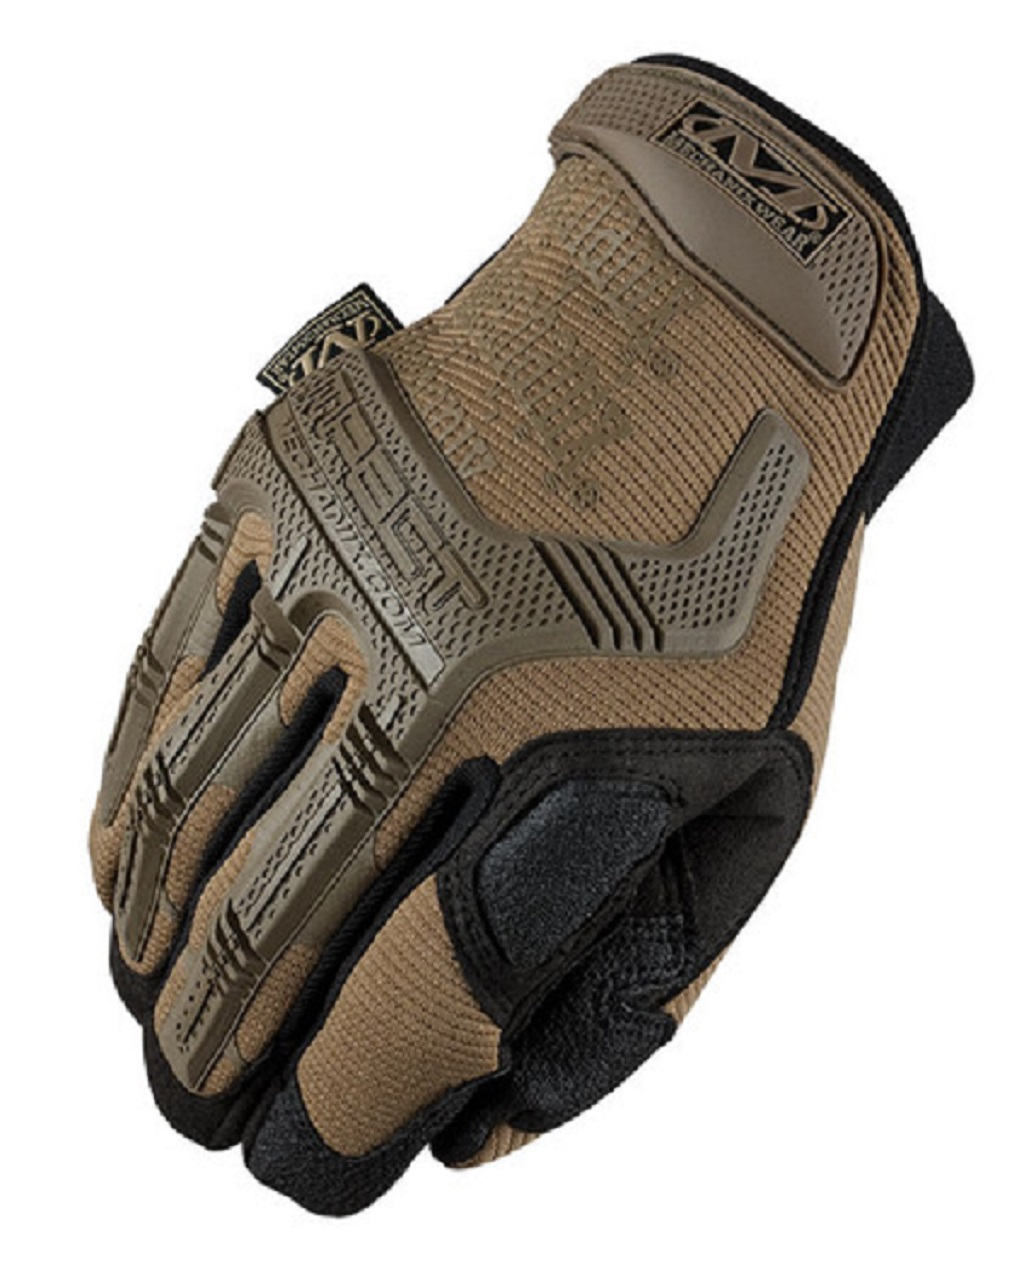 Mechanix-MPact-Gloves-01